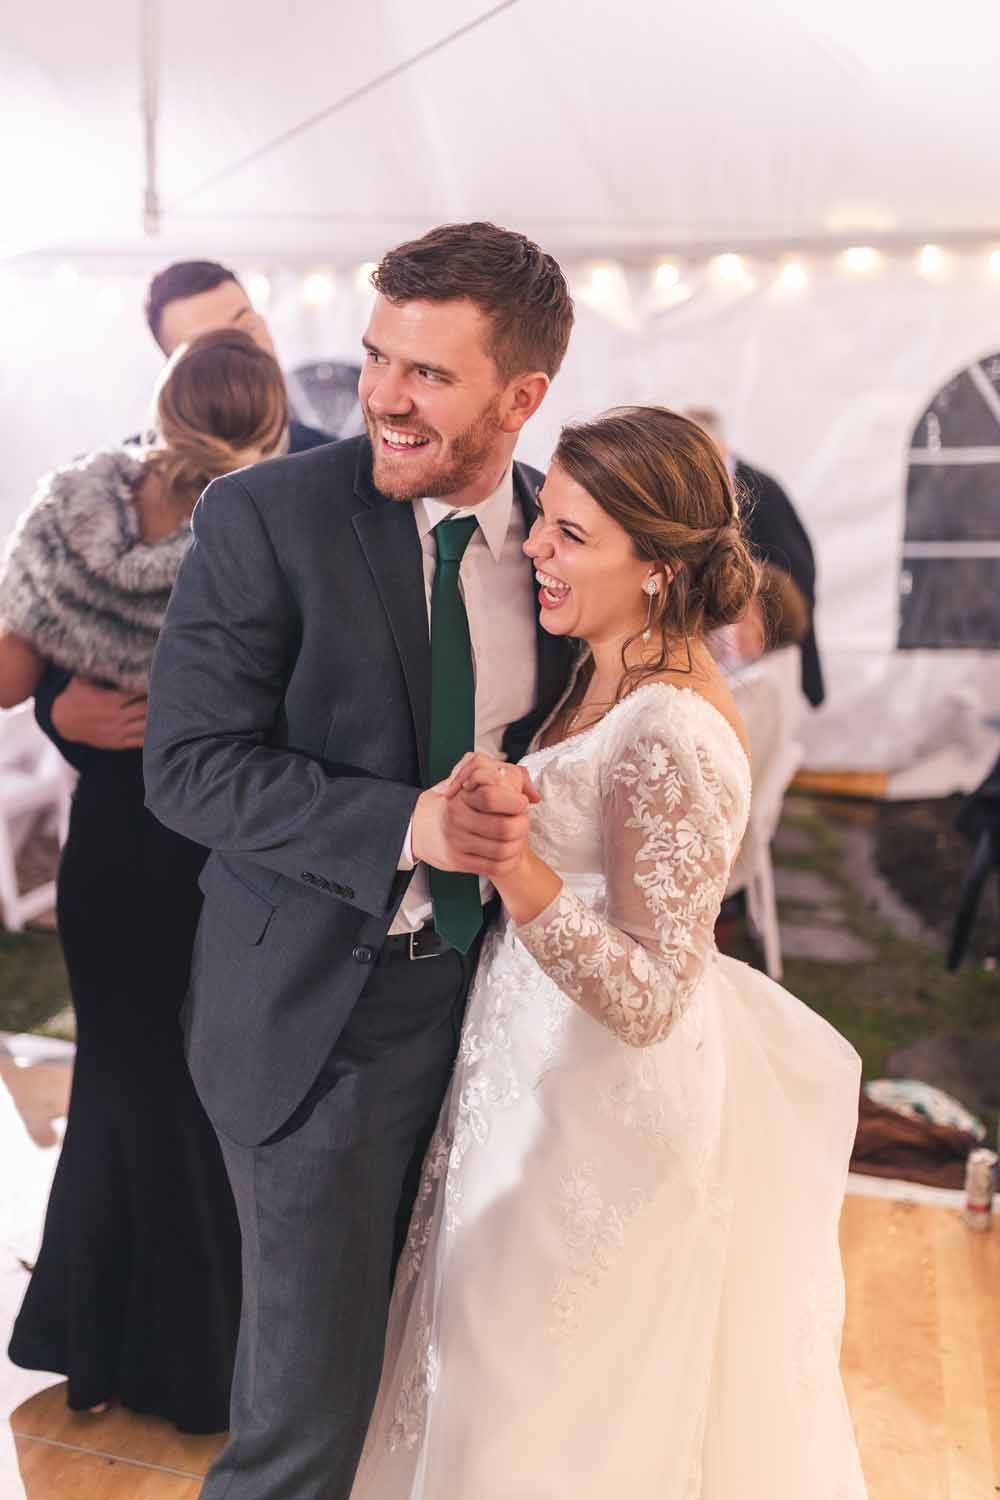 Newly weds dancing during reception